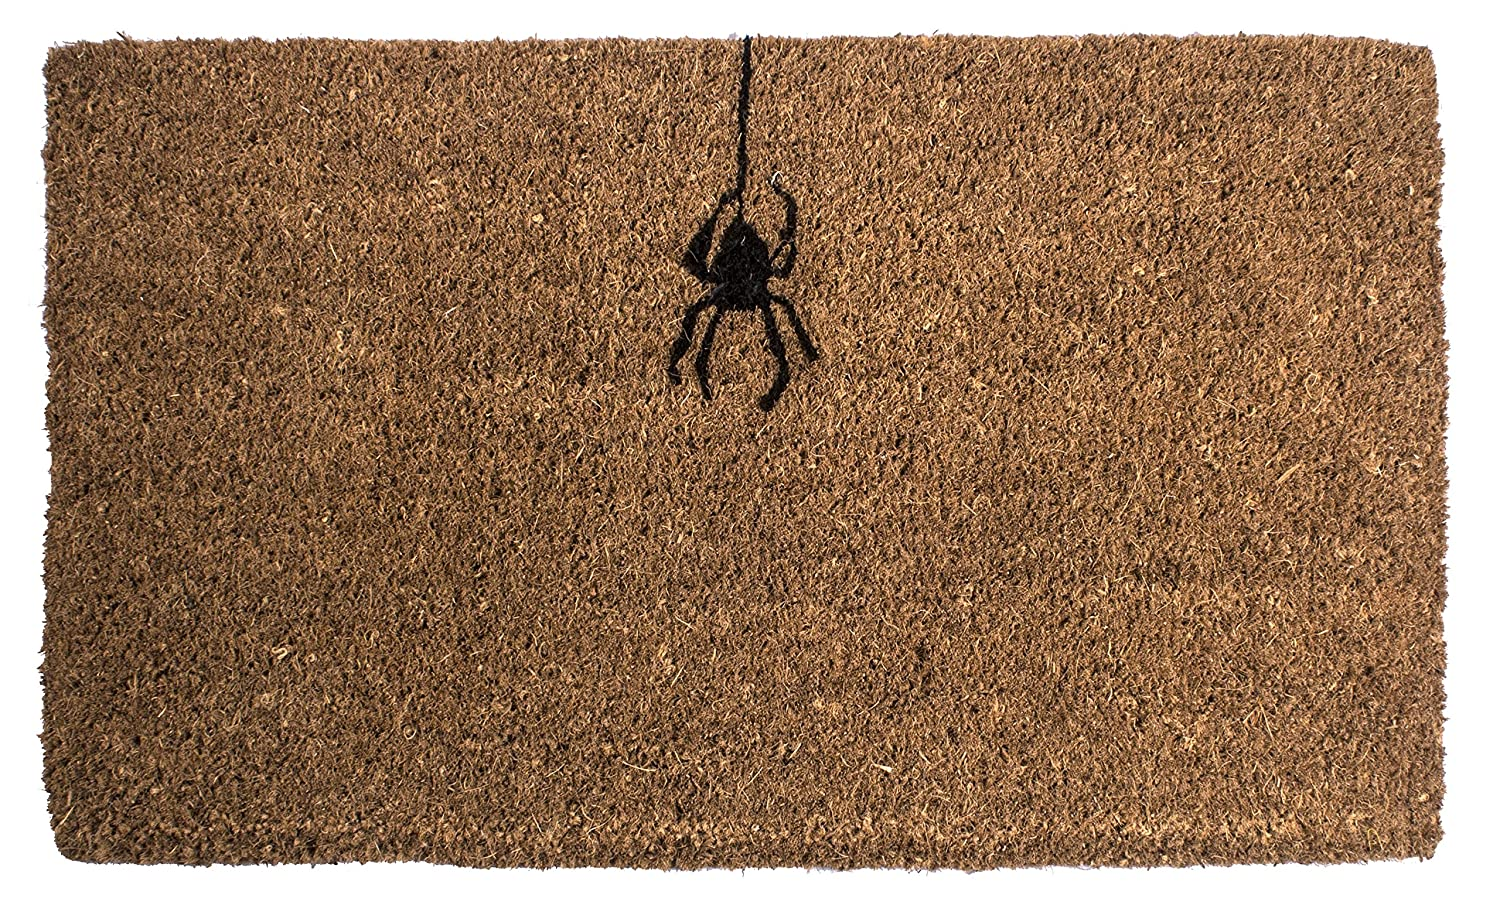 Amazon.com : Entryways Spider, Hand-Stenciled, All-Natural Coconut ...